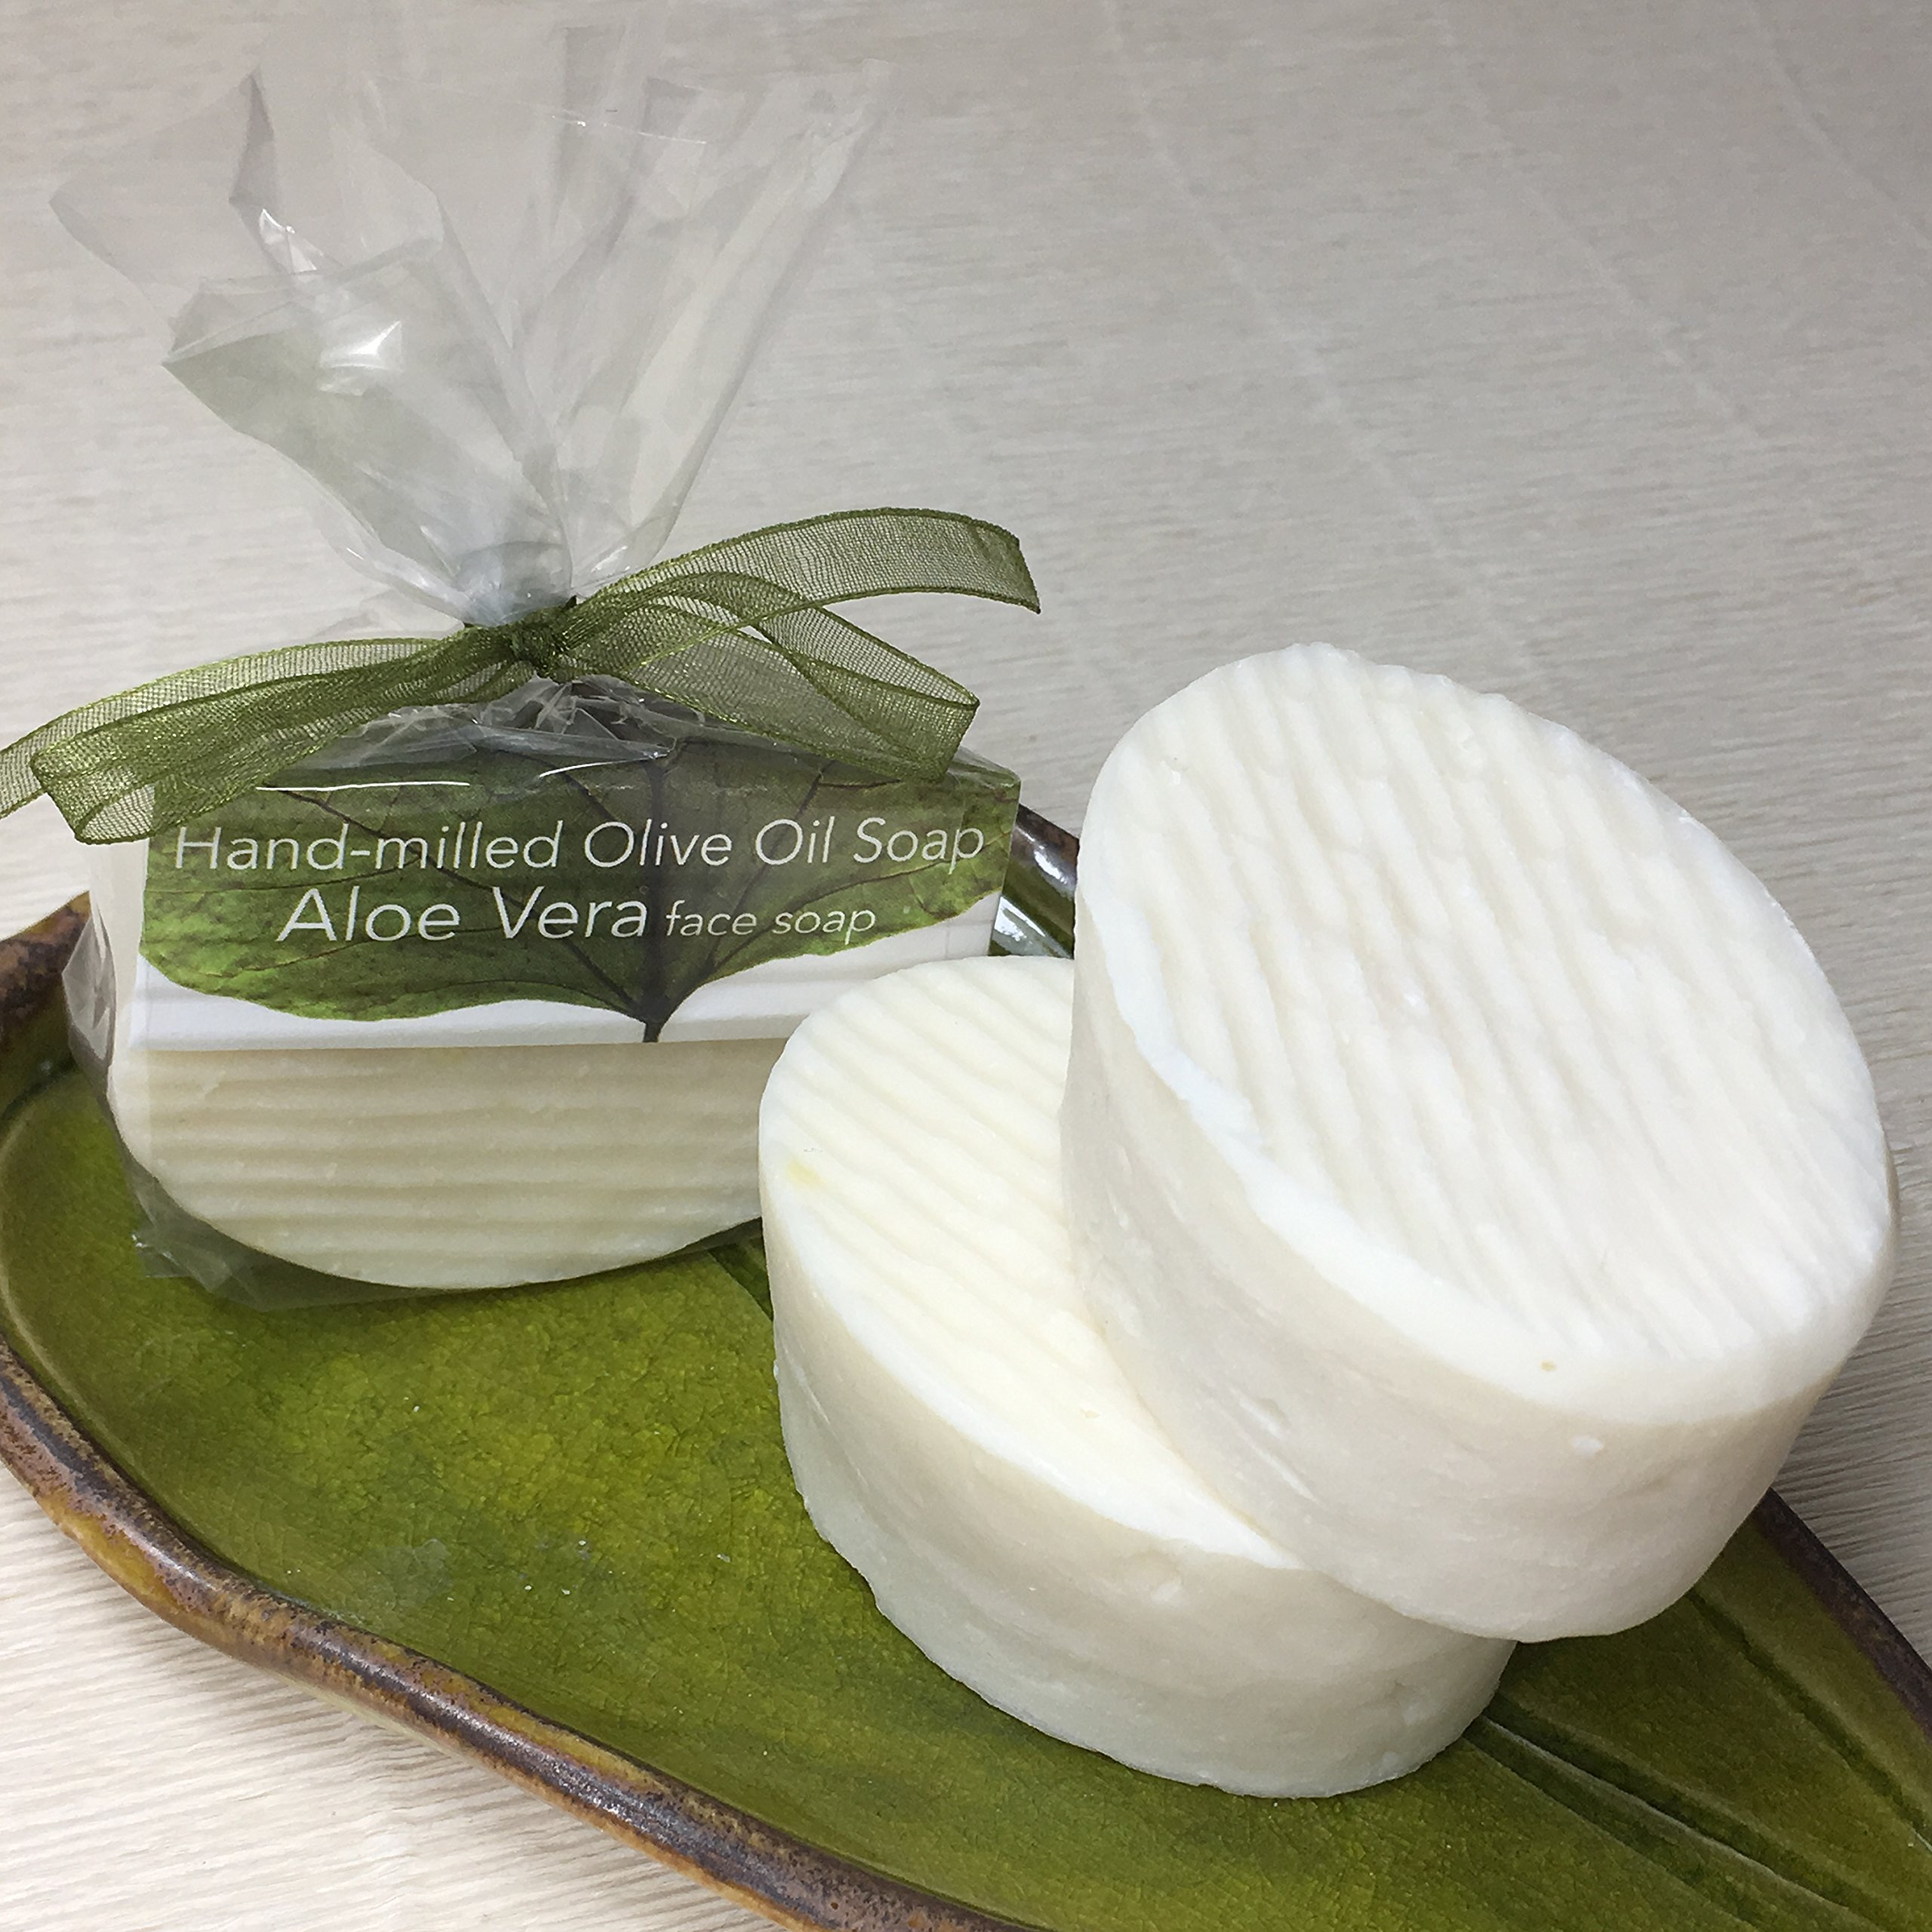 JANECKA Aloe Vera Oval Soap / Hand-milled Gentle Unscented ( Set of 3 )